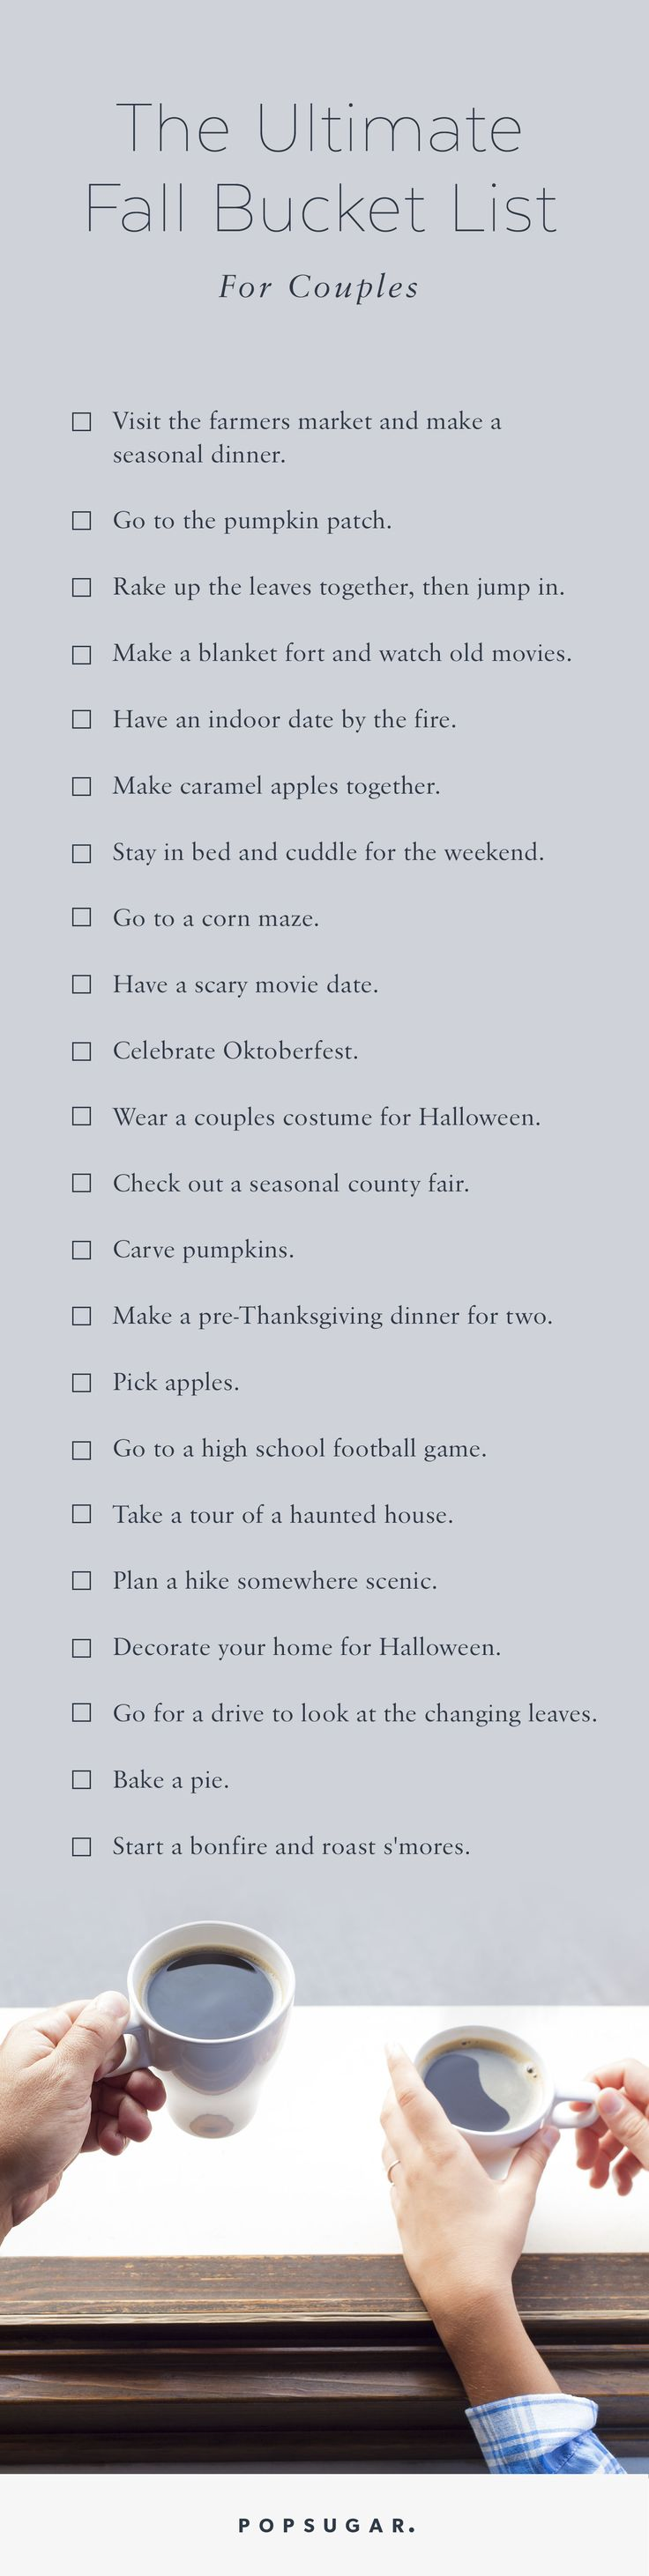 We challenge you and your partner to complete all of these activities before Fall is over. It will bring you closer together right in time for the holidays!